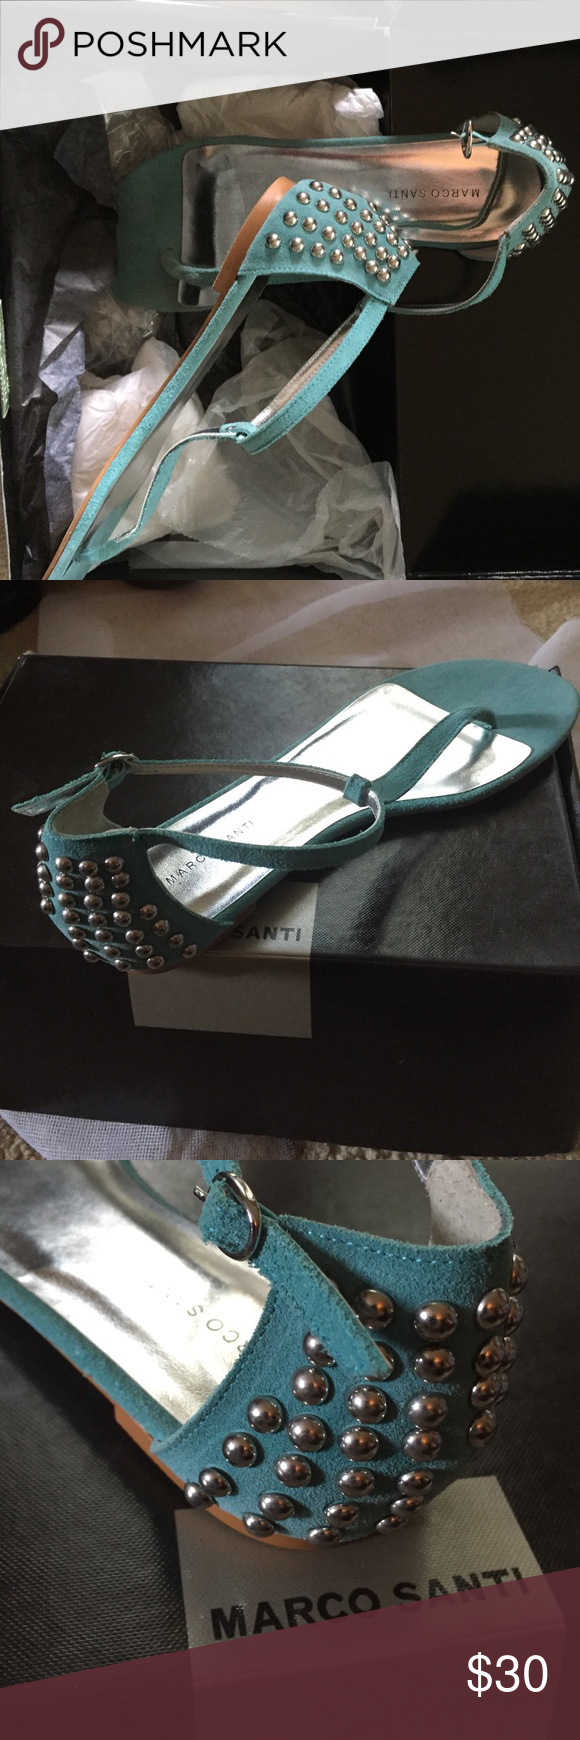 Marco Santi turquoise sandals. New in box super cute sandals. Blue suede. 100% goes to charity. Marco Santi Shoes Sandals